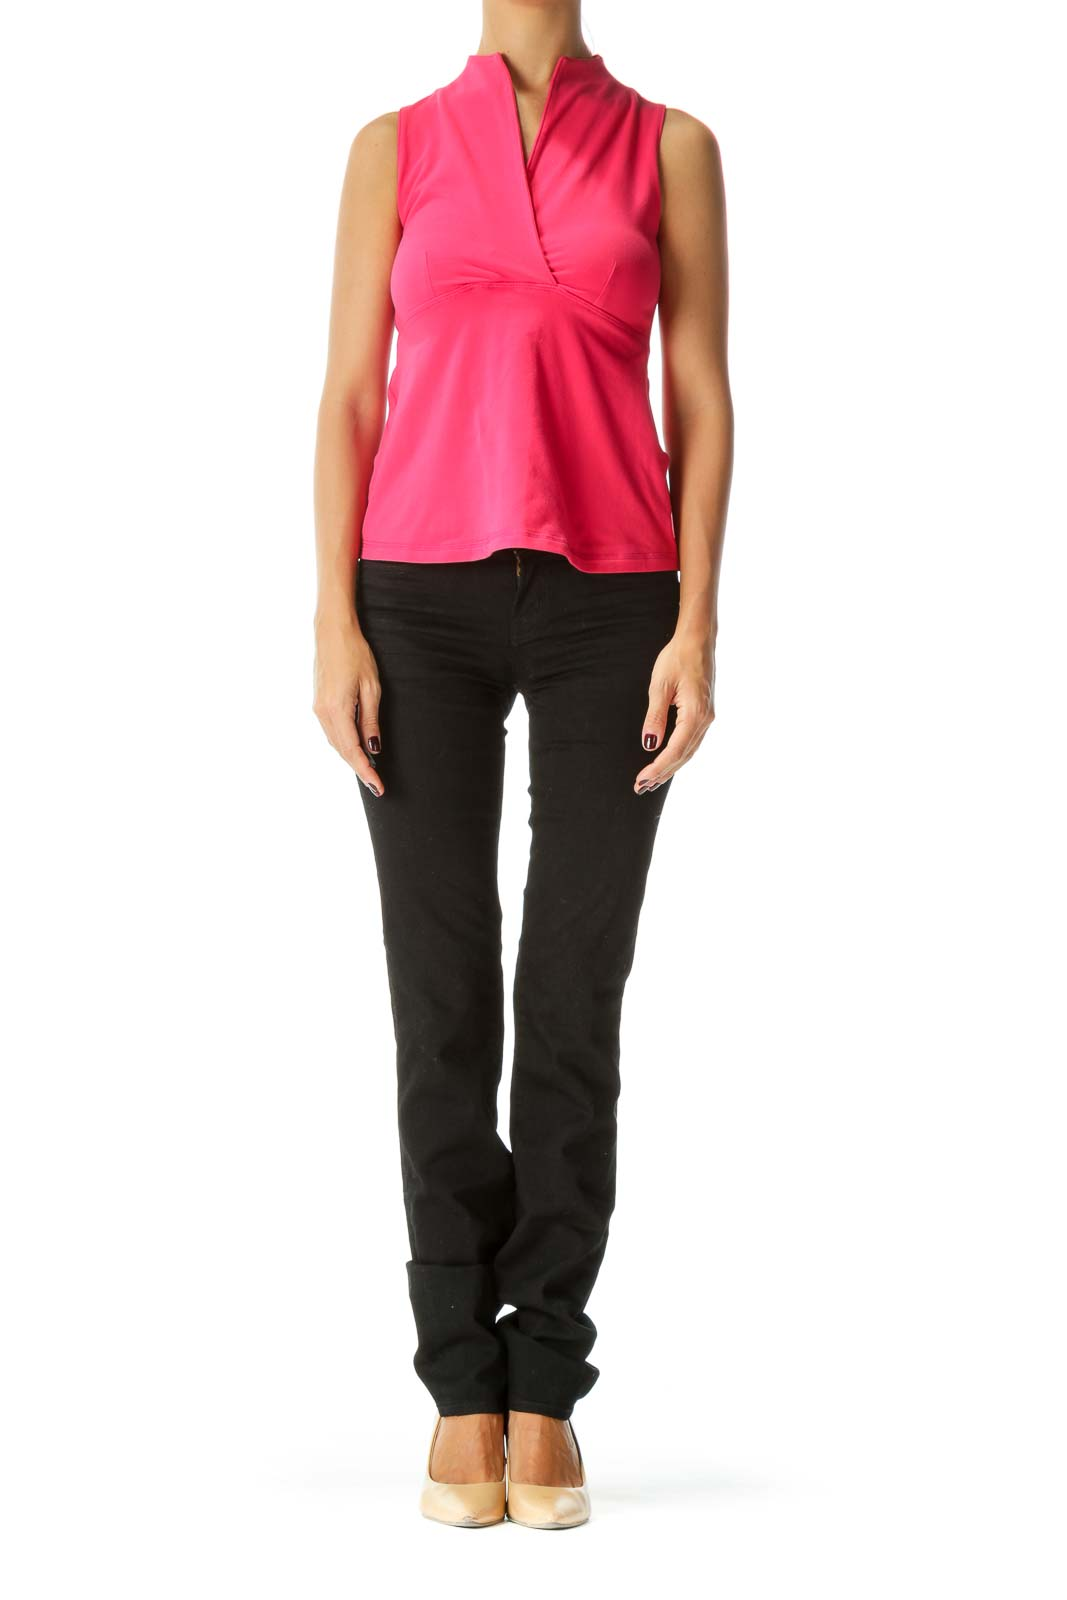 Pink Surplice V-Neck Stretch Sports Top with Built-In Bra